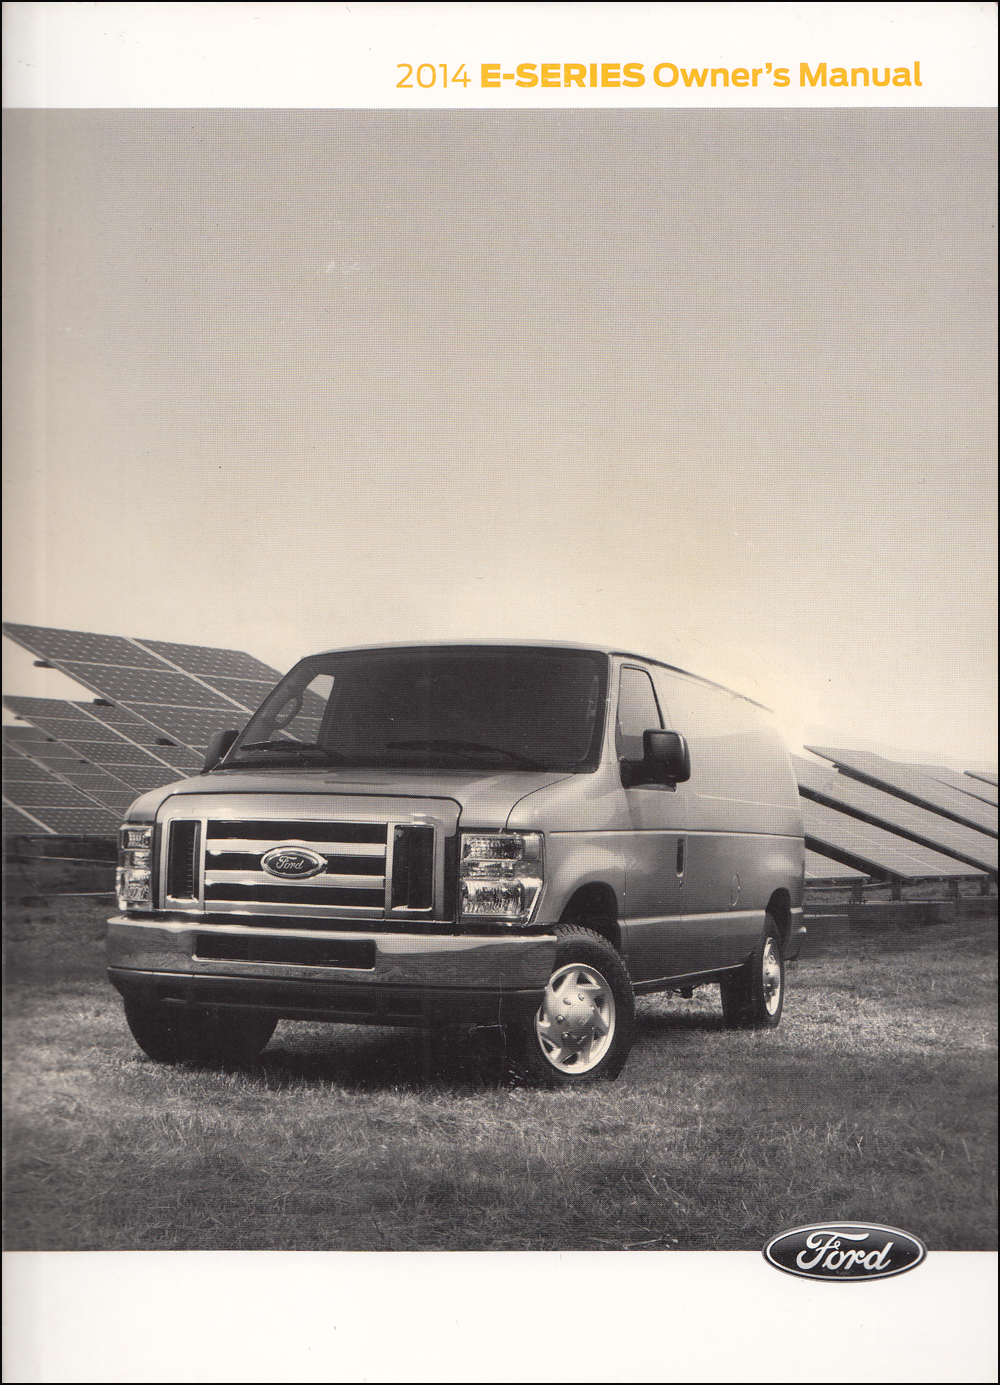 2014 Ford E-Series Econoline Owner's Manual Original